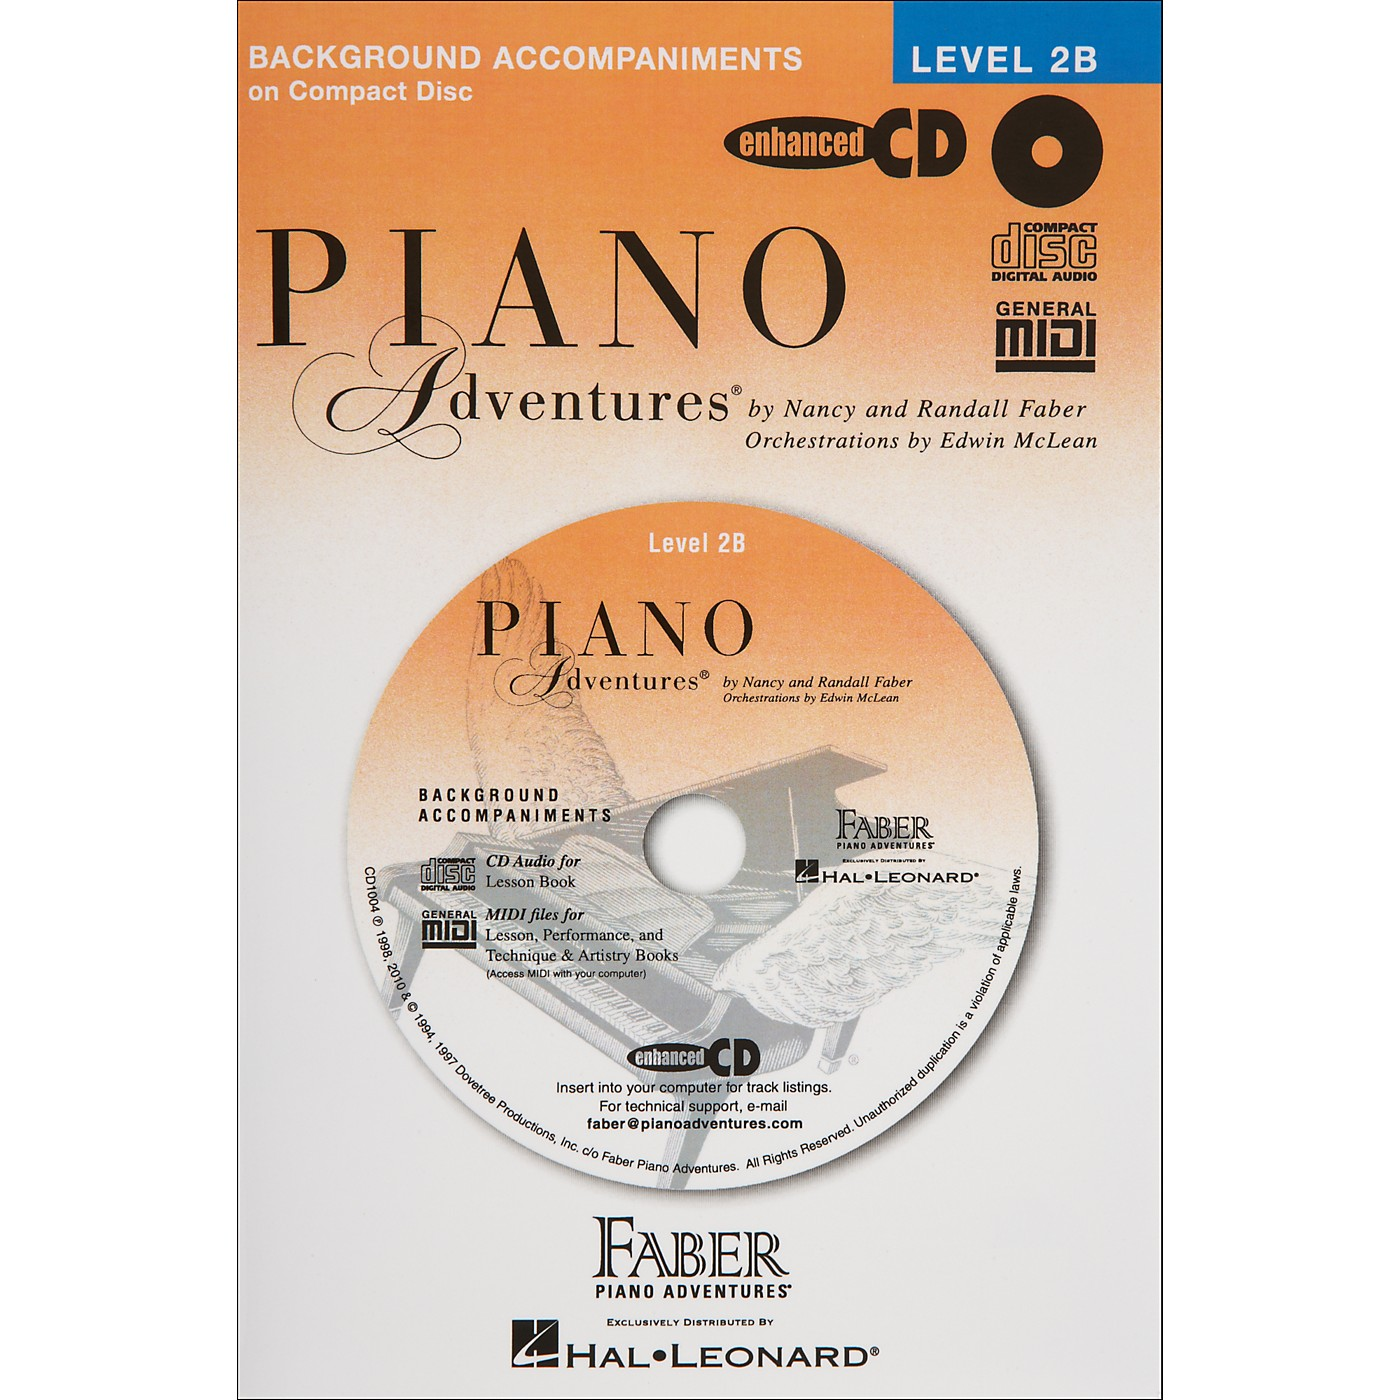 Faber Piano Adventures Piano Adventures Lesson CD for Level 2B - Faber Piano thumbnail